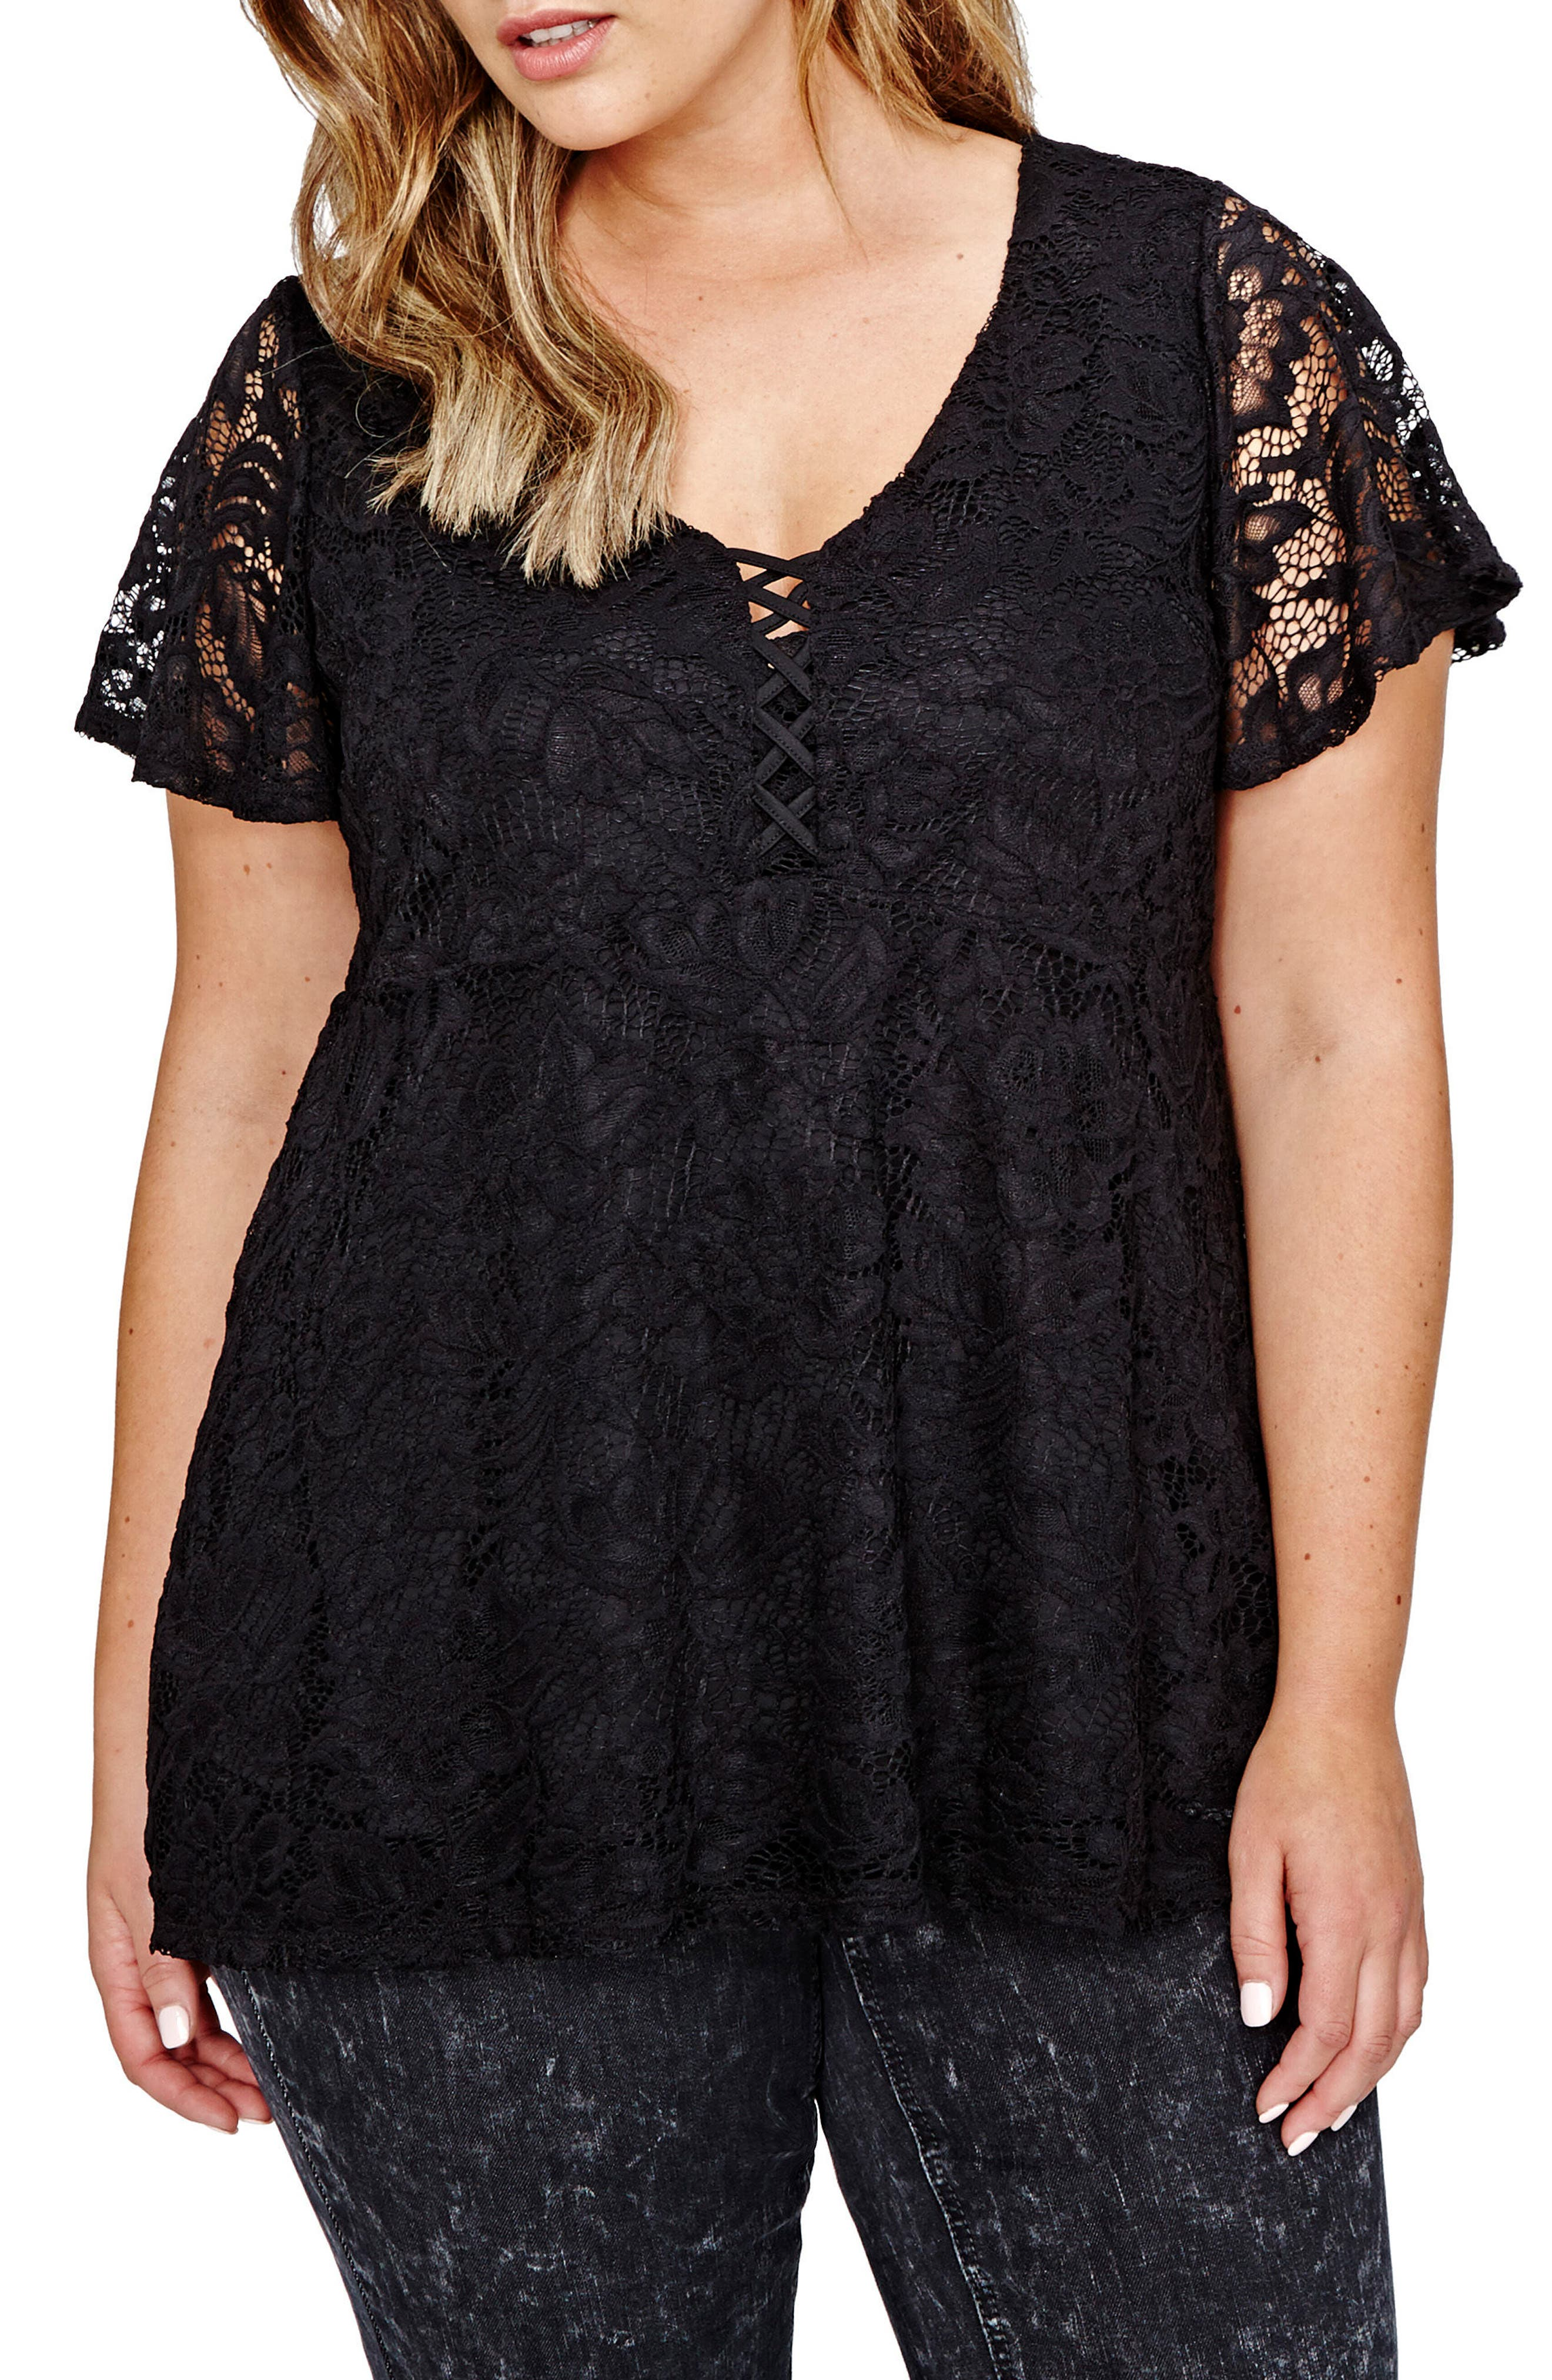 Alternate Image 1 Selected - ADDITION ELLE LOVE AND LEGEND V-Neck Lace Babydoll Top (Plus Size)